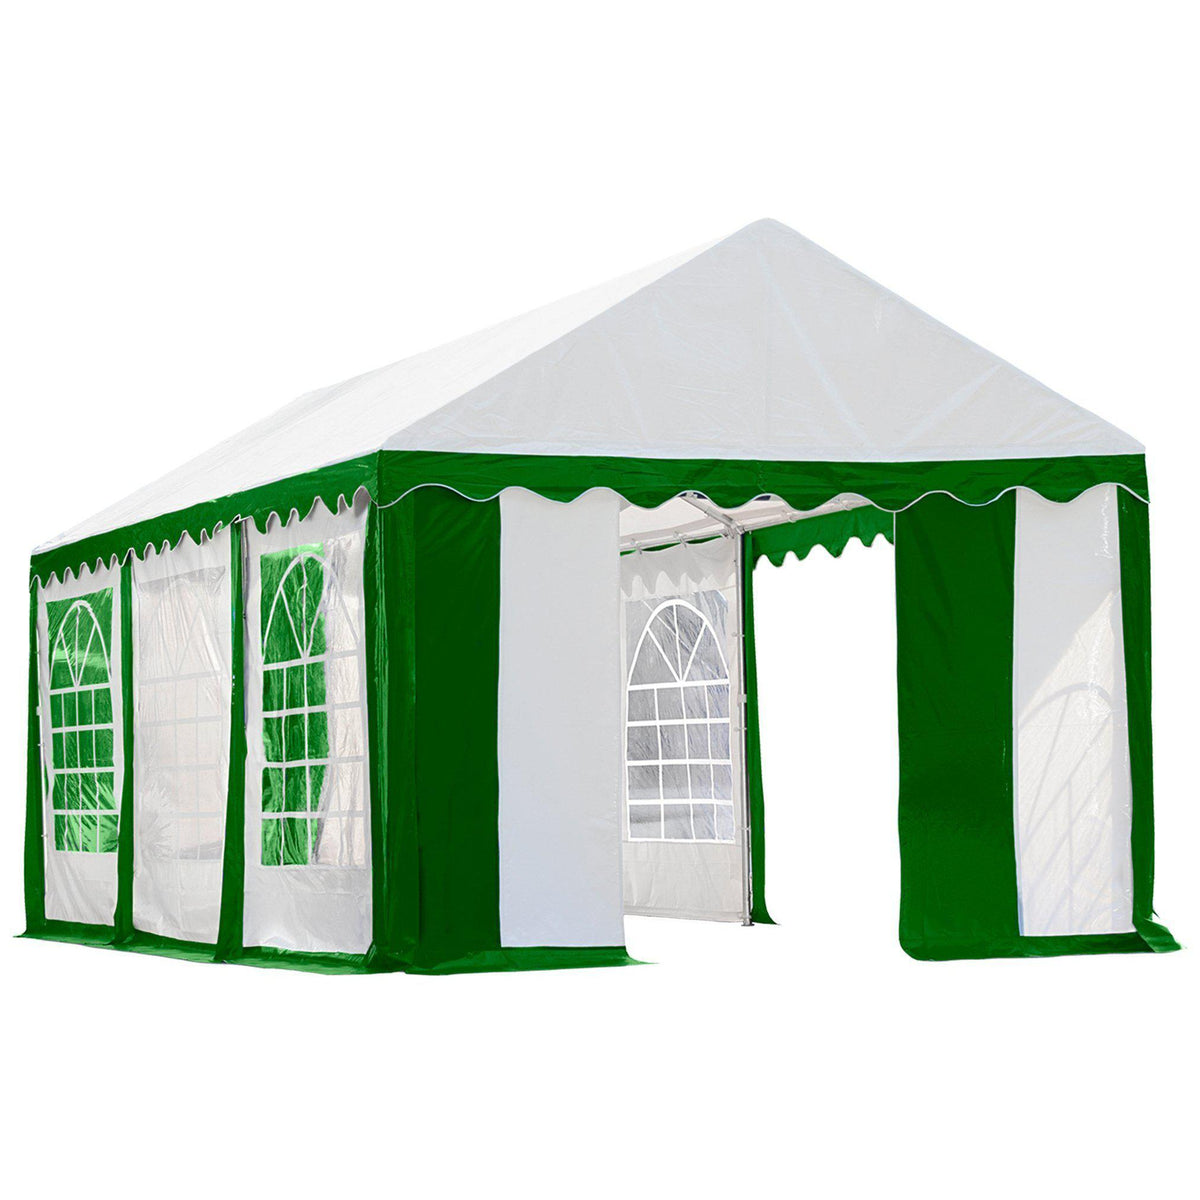 ShelterLogic Enclosure Kit with Windows, Green/White, 10 x 20 ft. (Party Tent Cover and Frame Sold Separately)